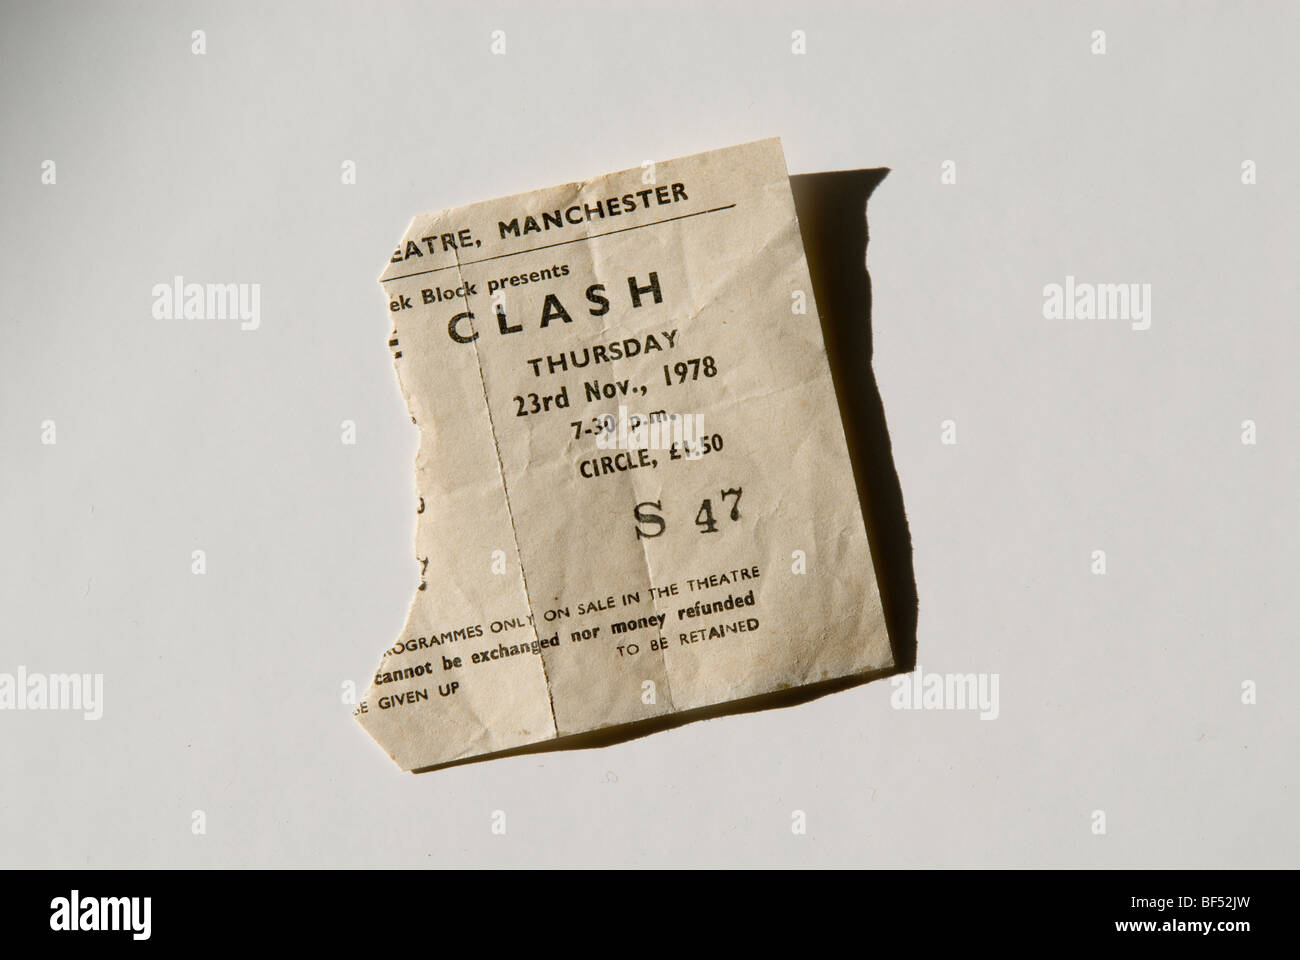 The Clash concert ticket, Manchester Apollo, 1978 - Stock Image